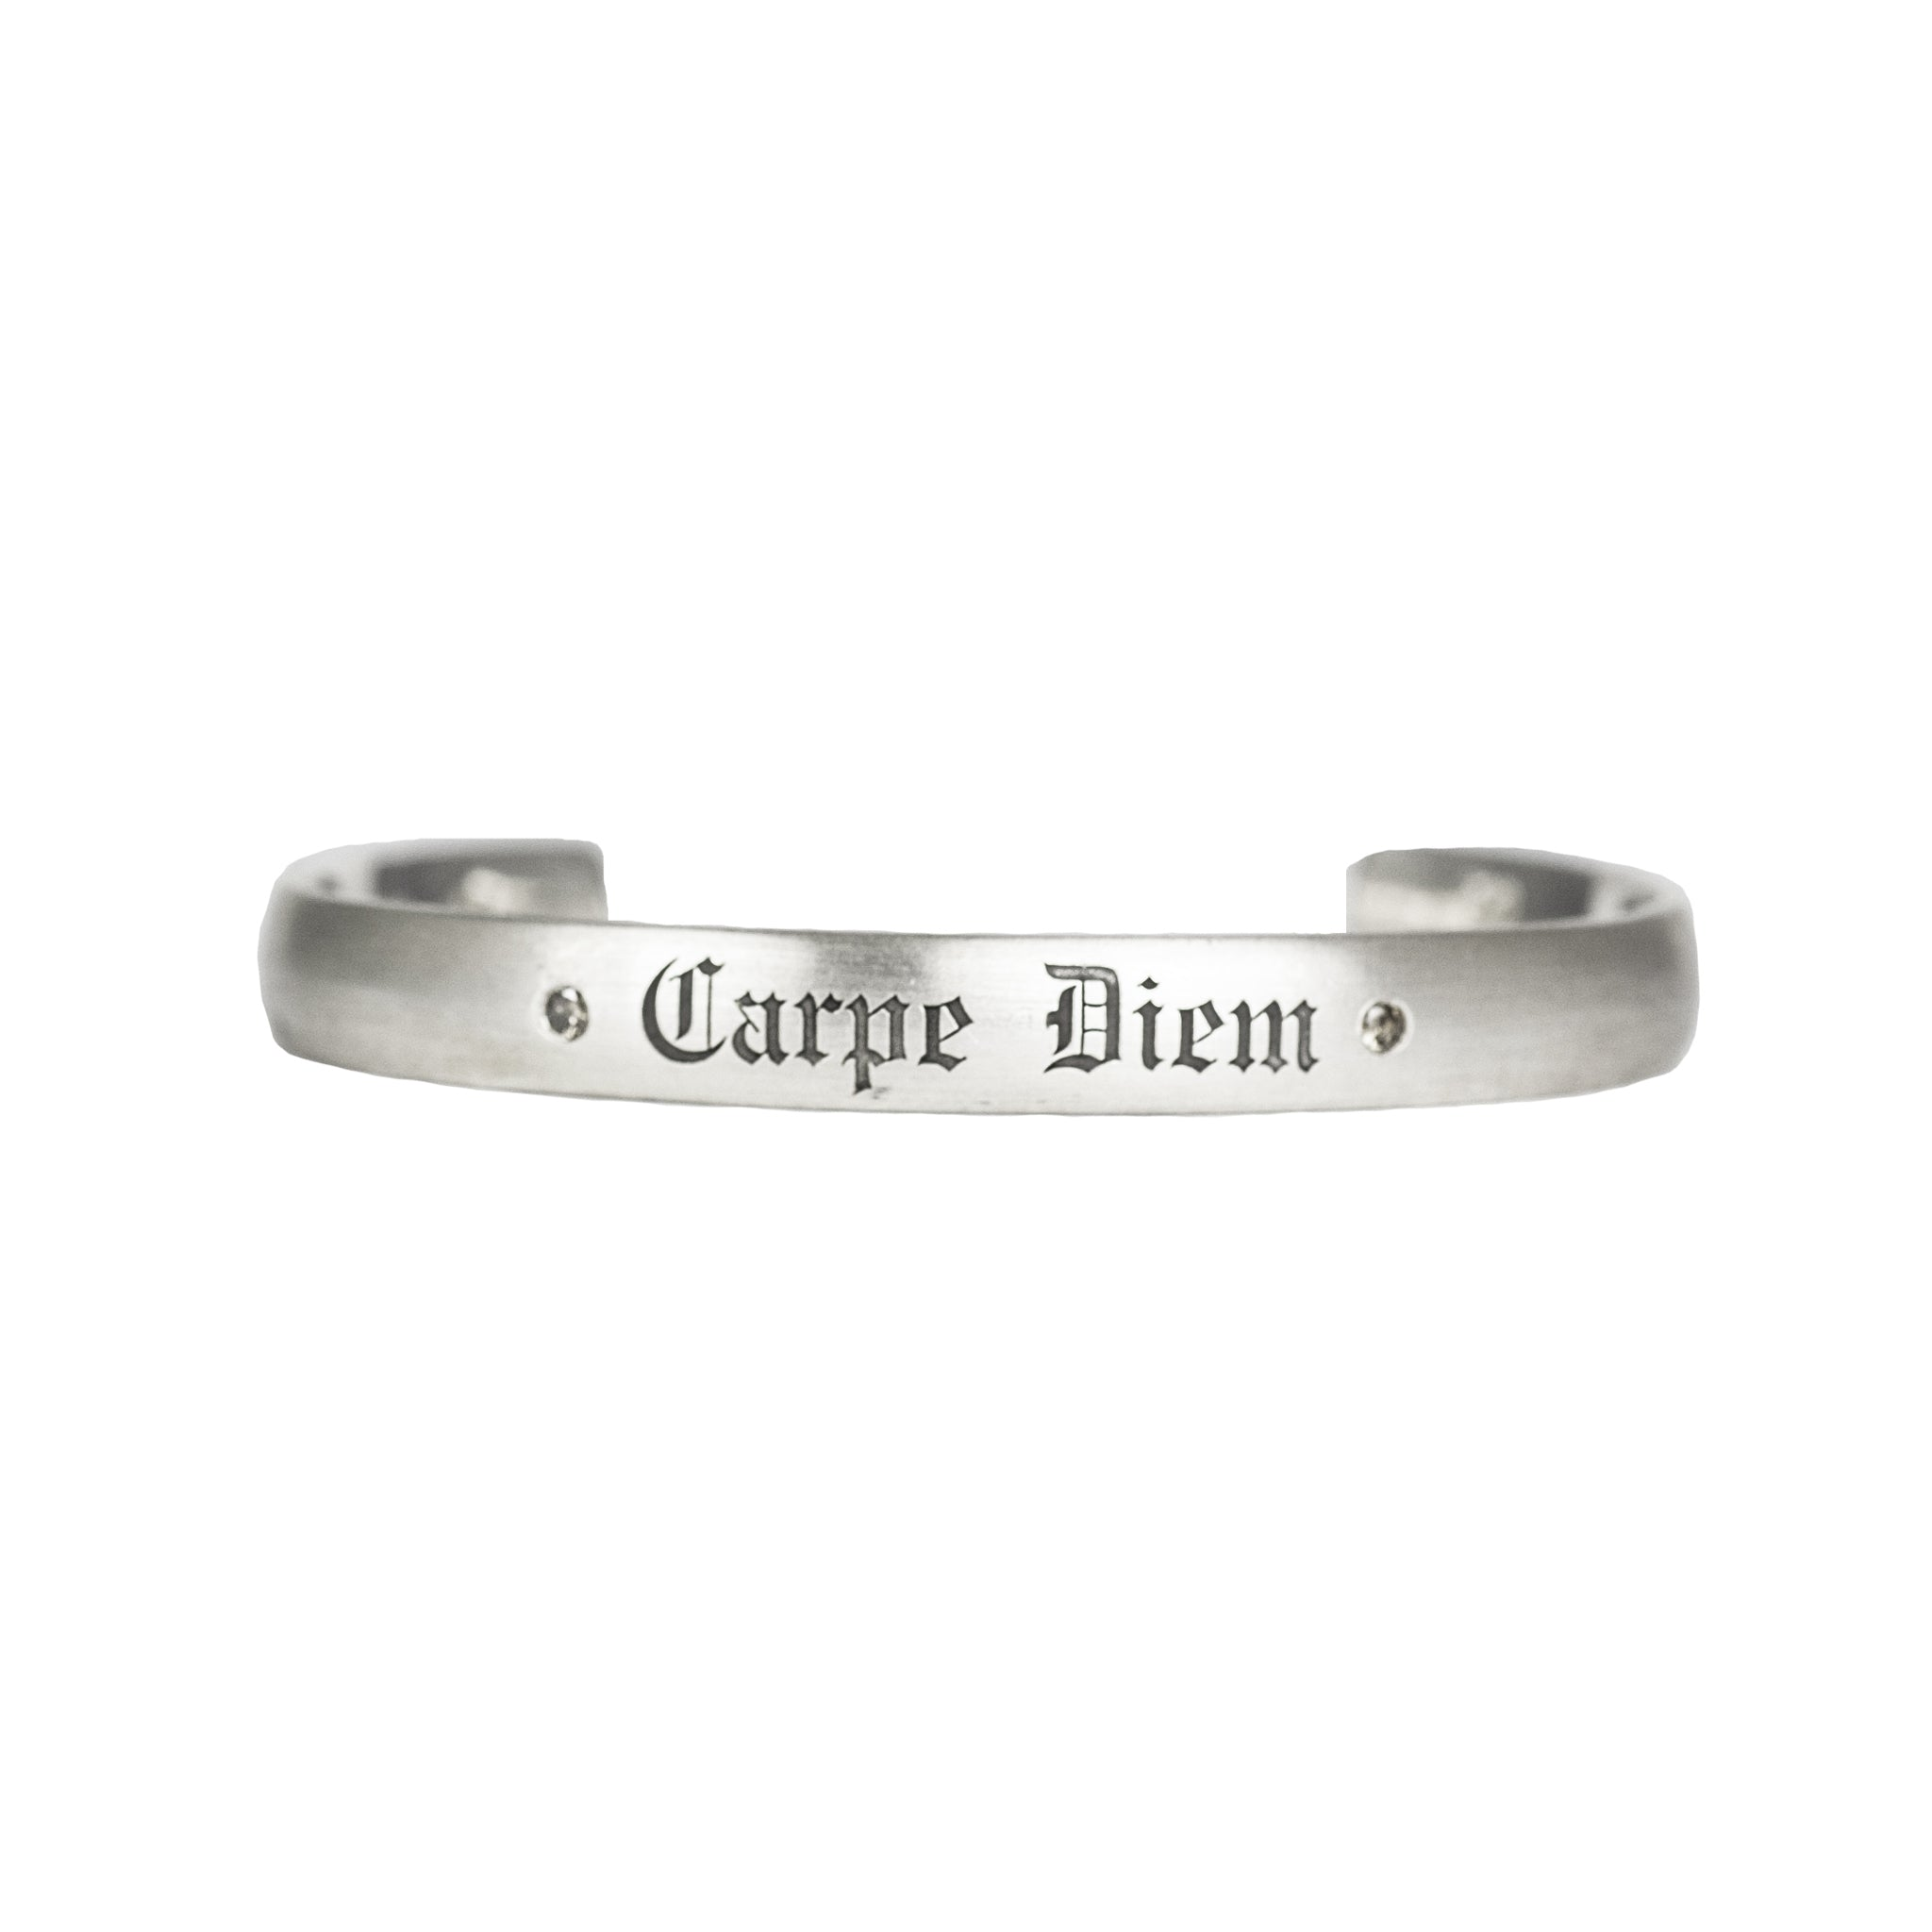 "Satin brushed sterling silver cuff bracelet with champagne diamonds next to custom engraving reading ""Carpe Diem"" in fine Gothic letters"